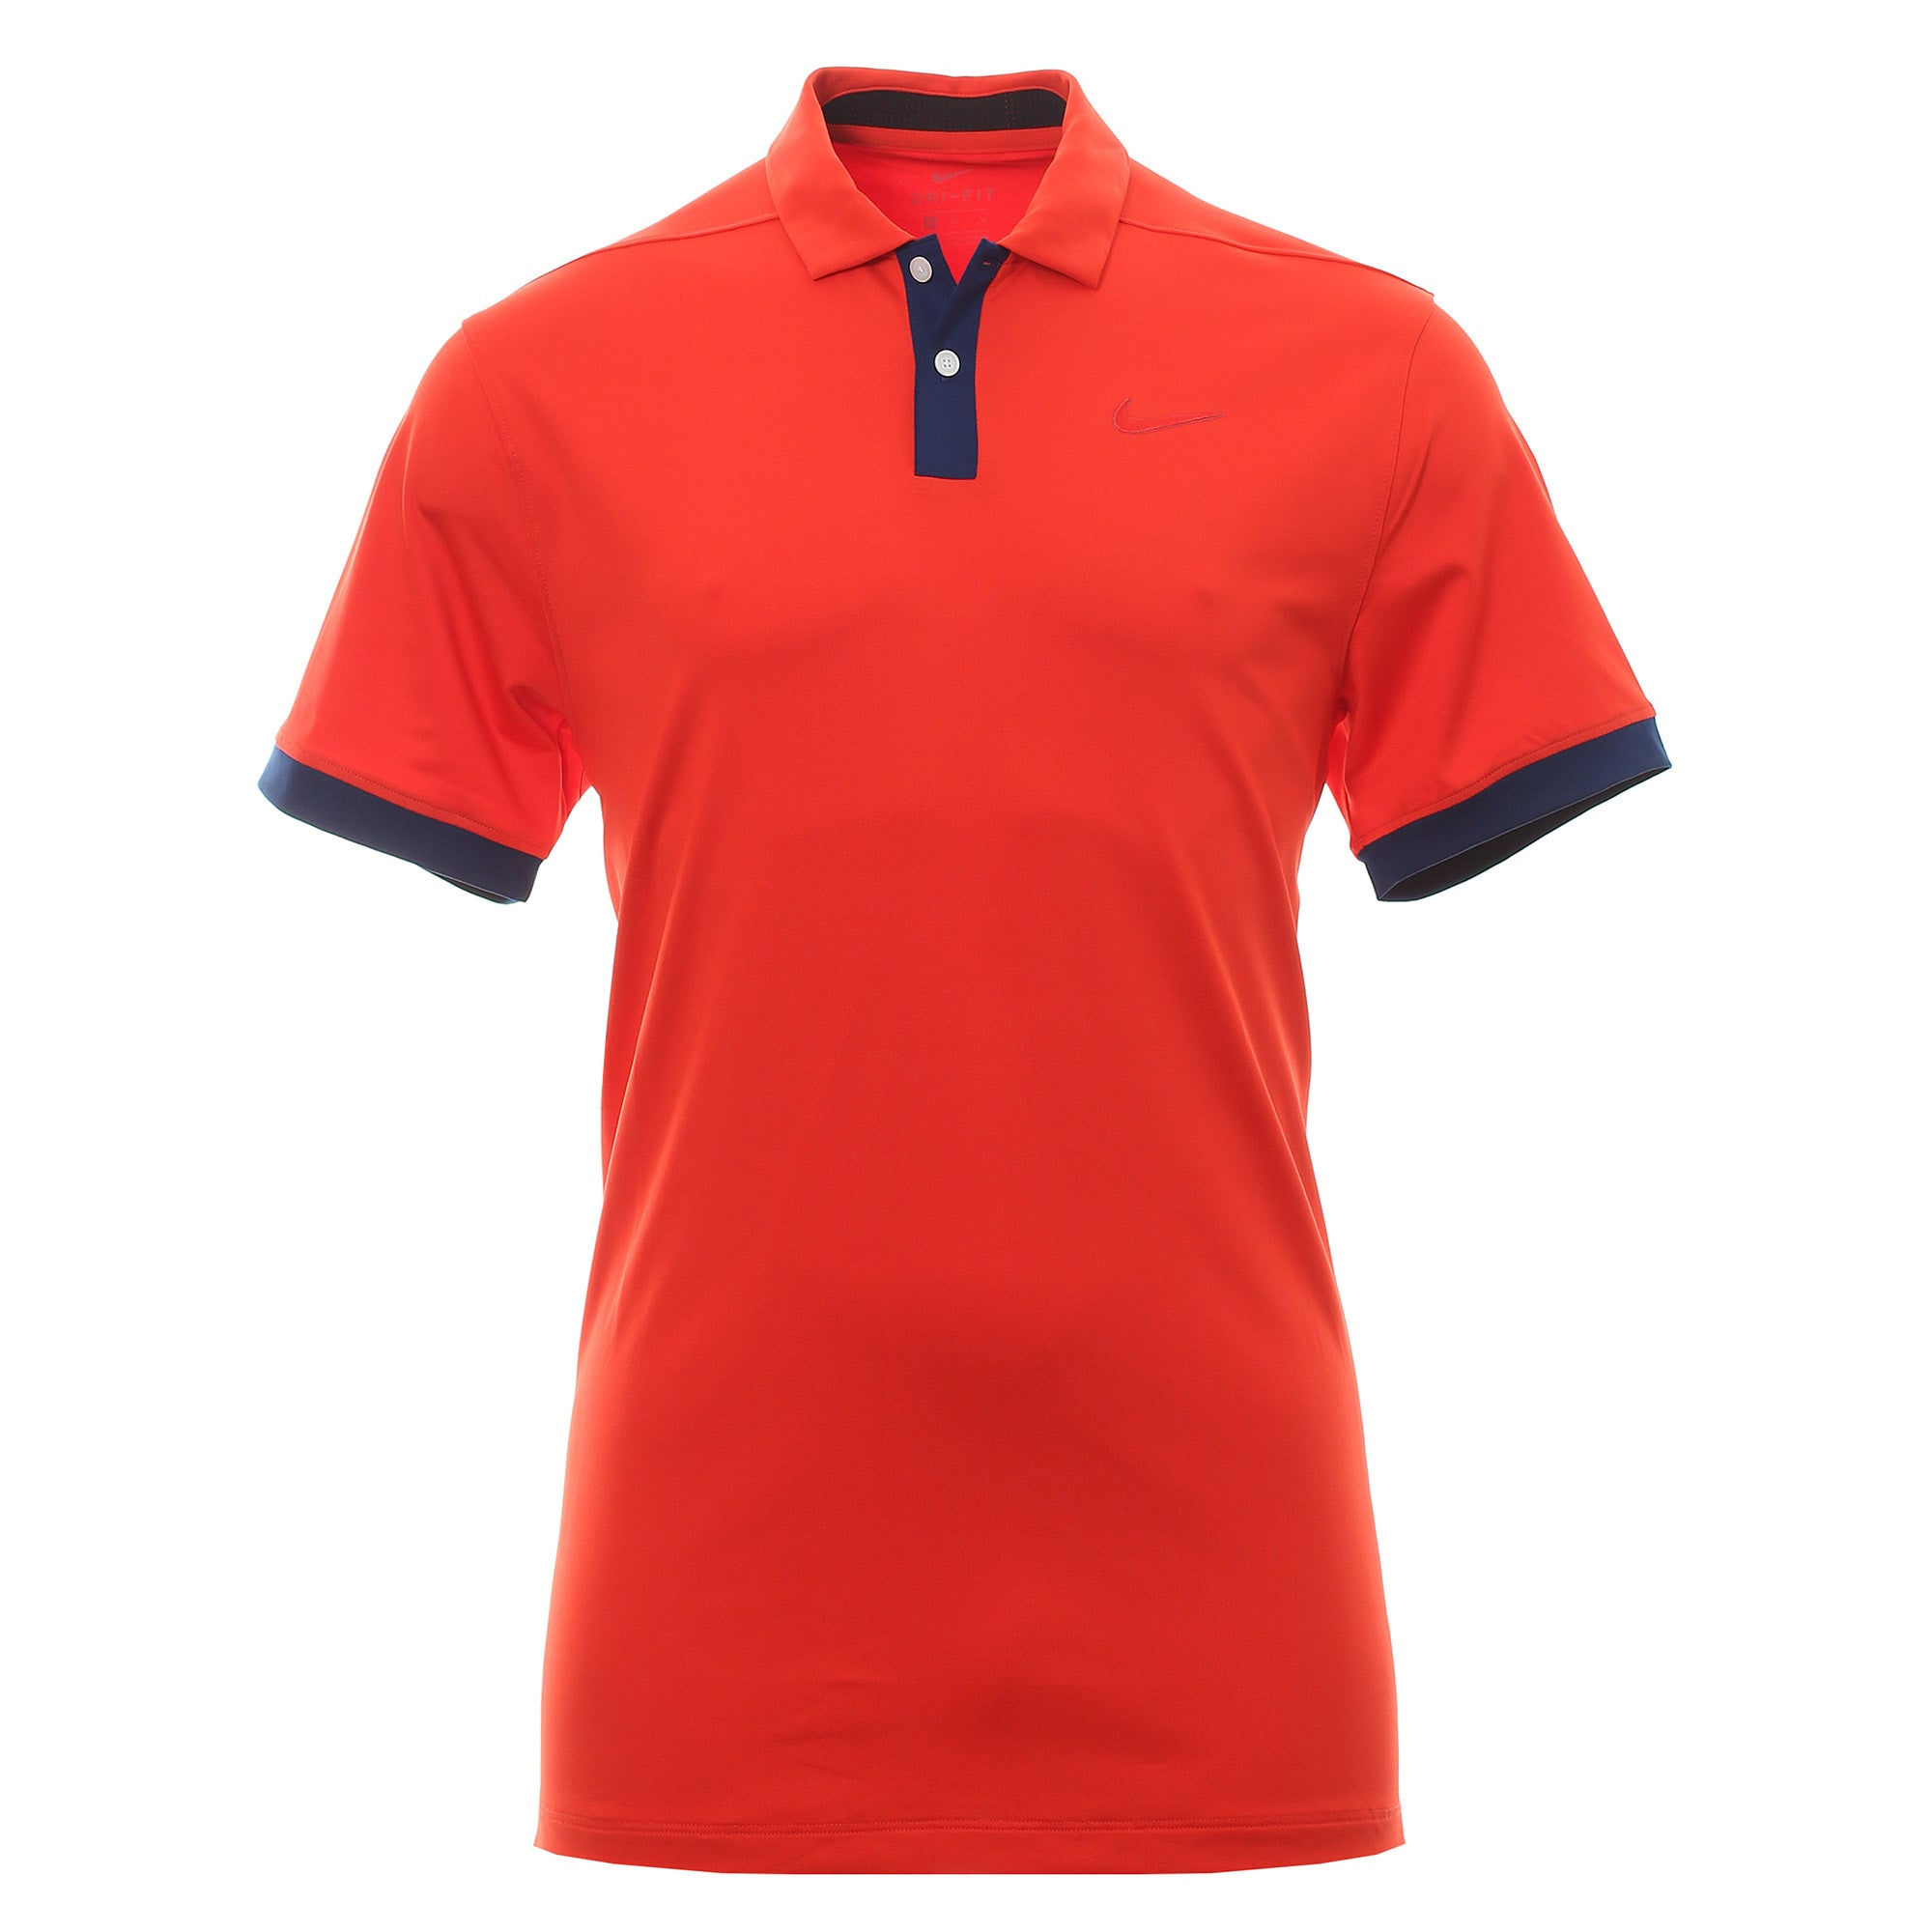 Nike Golf Dry Vapor Solid Shirt AT8890